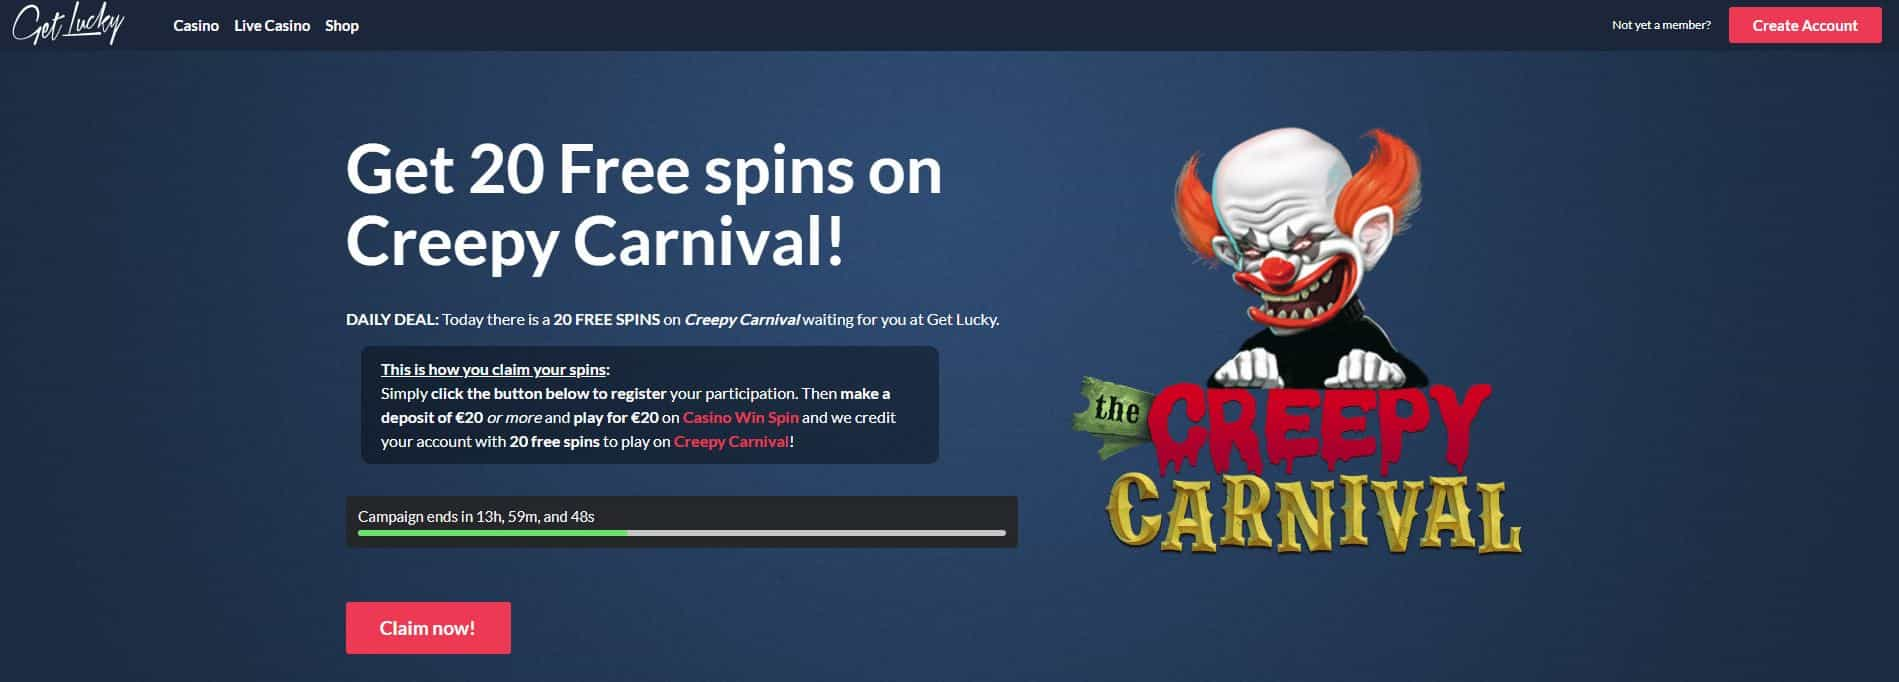 Get Lucky Casino daily deal